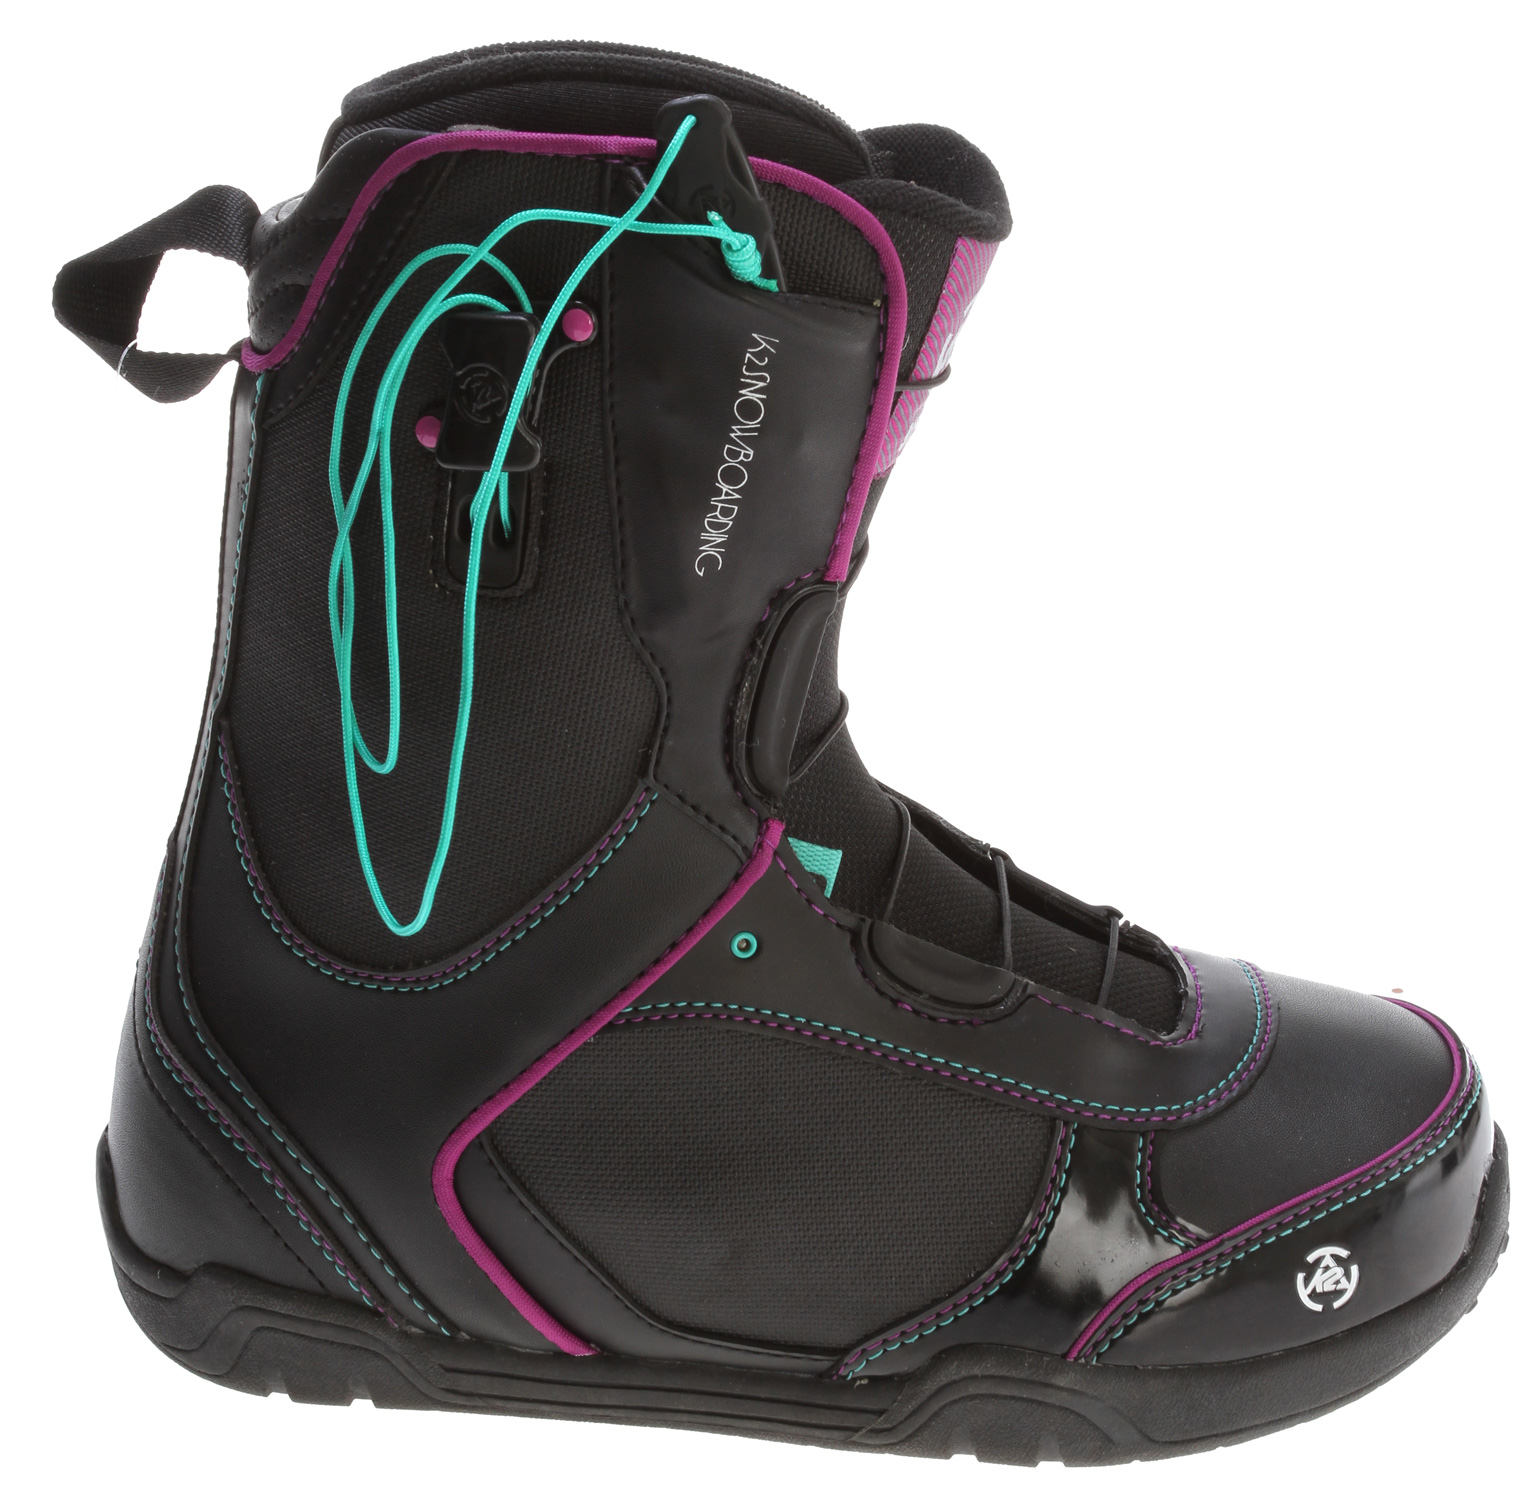 Snowboard Made for the advancing women's rider looking for lightweight and easy to tighten performance. The Scene is not just street focused style without substance. Intuition custom fit and Conda ankle hold adjustment on the fly show up all those that try and step.Key Features of the K2 Scene Snowboard Boots: FLEX: 4 LACING SYSTEM: K2 Speedlace LINER LACING: Conda LINER: Intuition Comfort fit 3D OUTSOLE: Low-Pro Outsole FOOTBED: EVA Insole LINER FIT: Custom Moldable External J Bars DETAILS: 3D Formed Tongue - $103.95